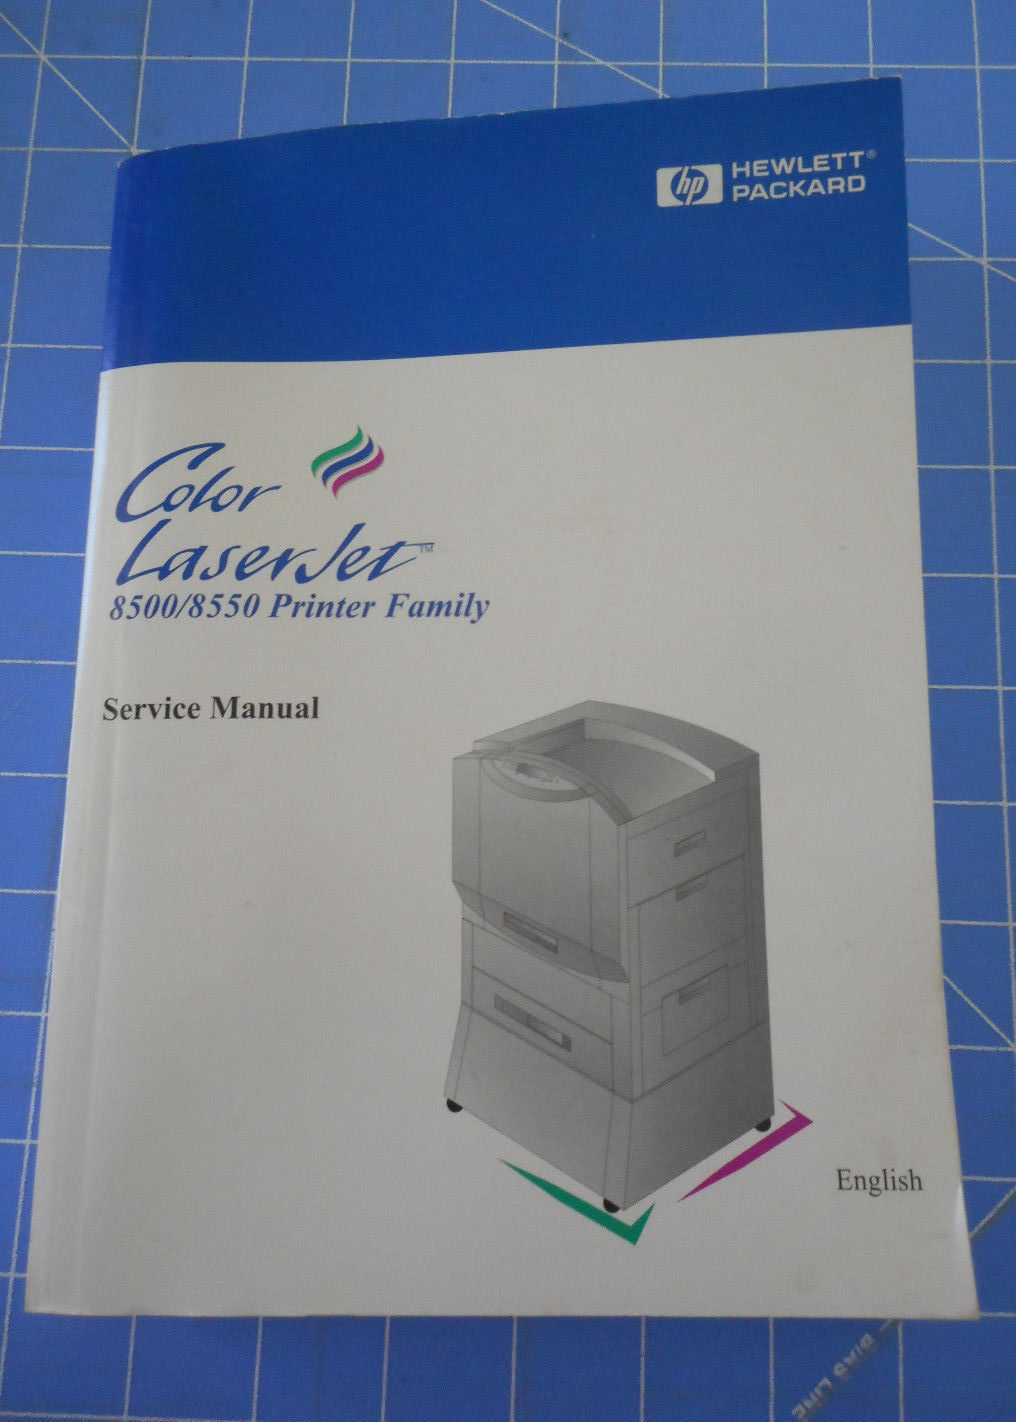 HP COLOR LASERJET 8500 8550 Service Manual Book 624 pages